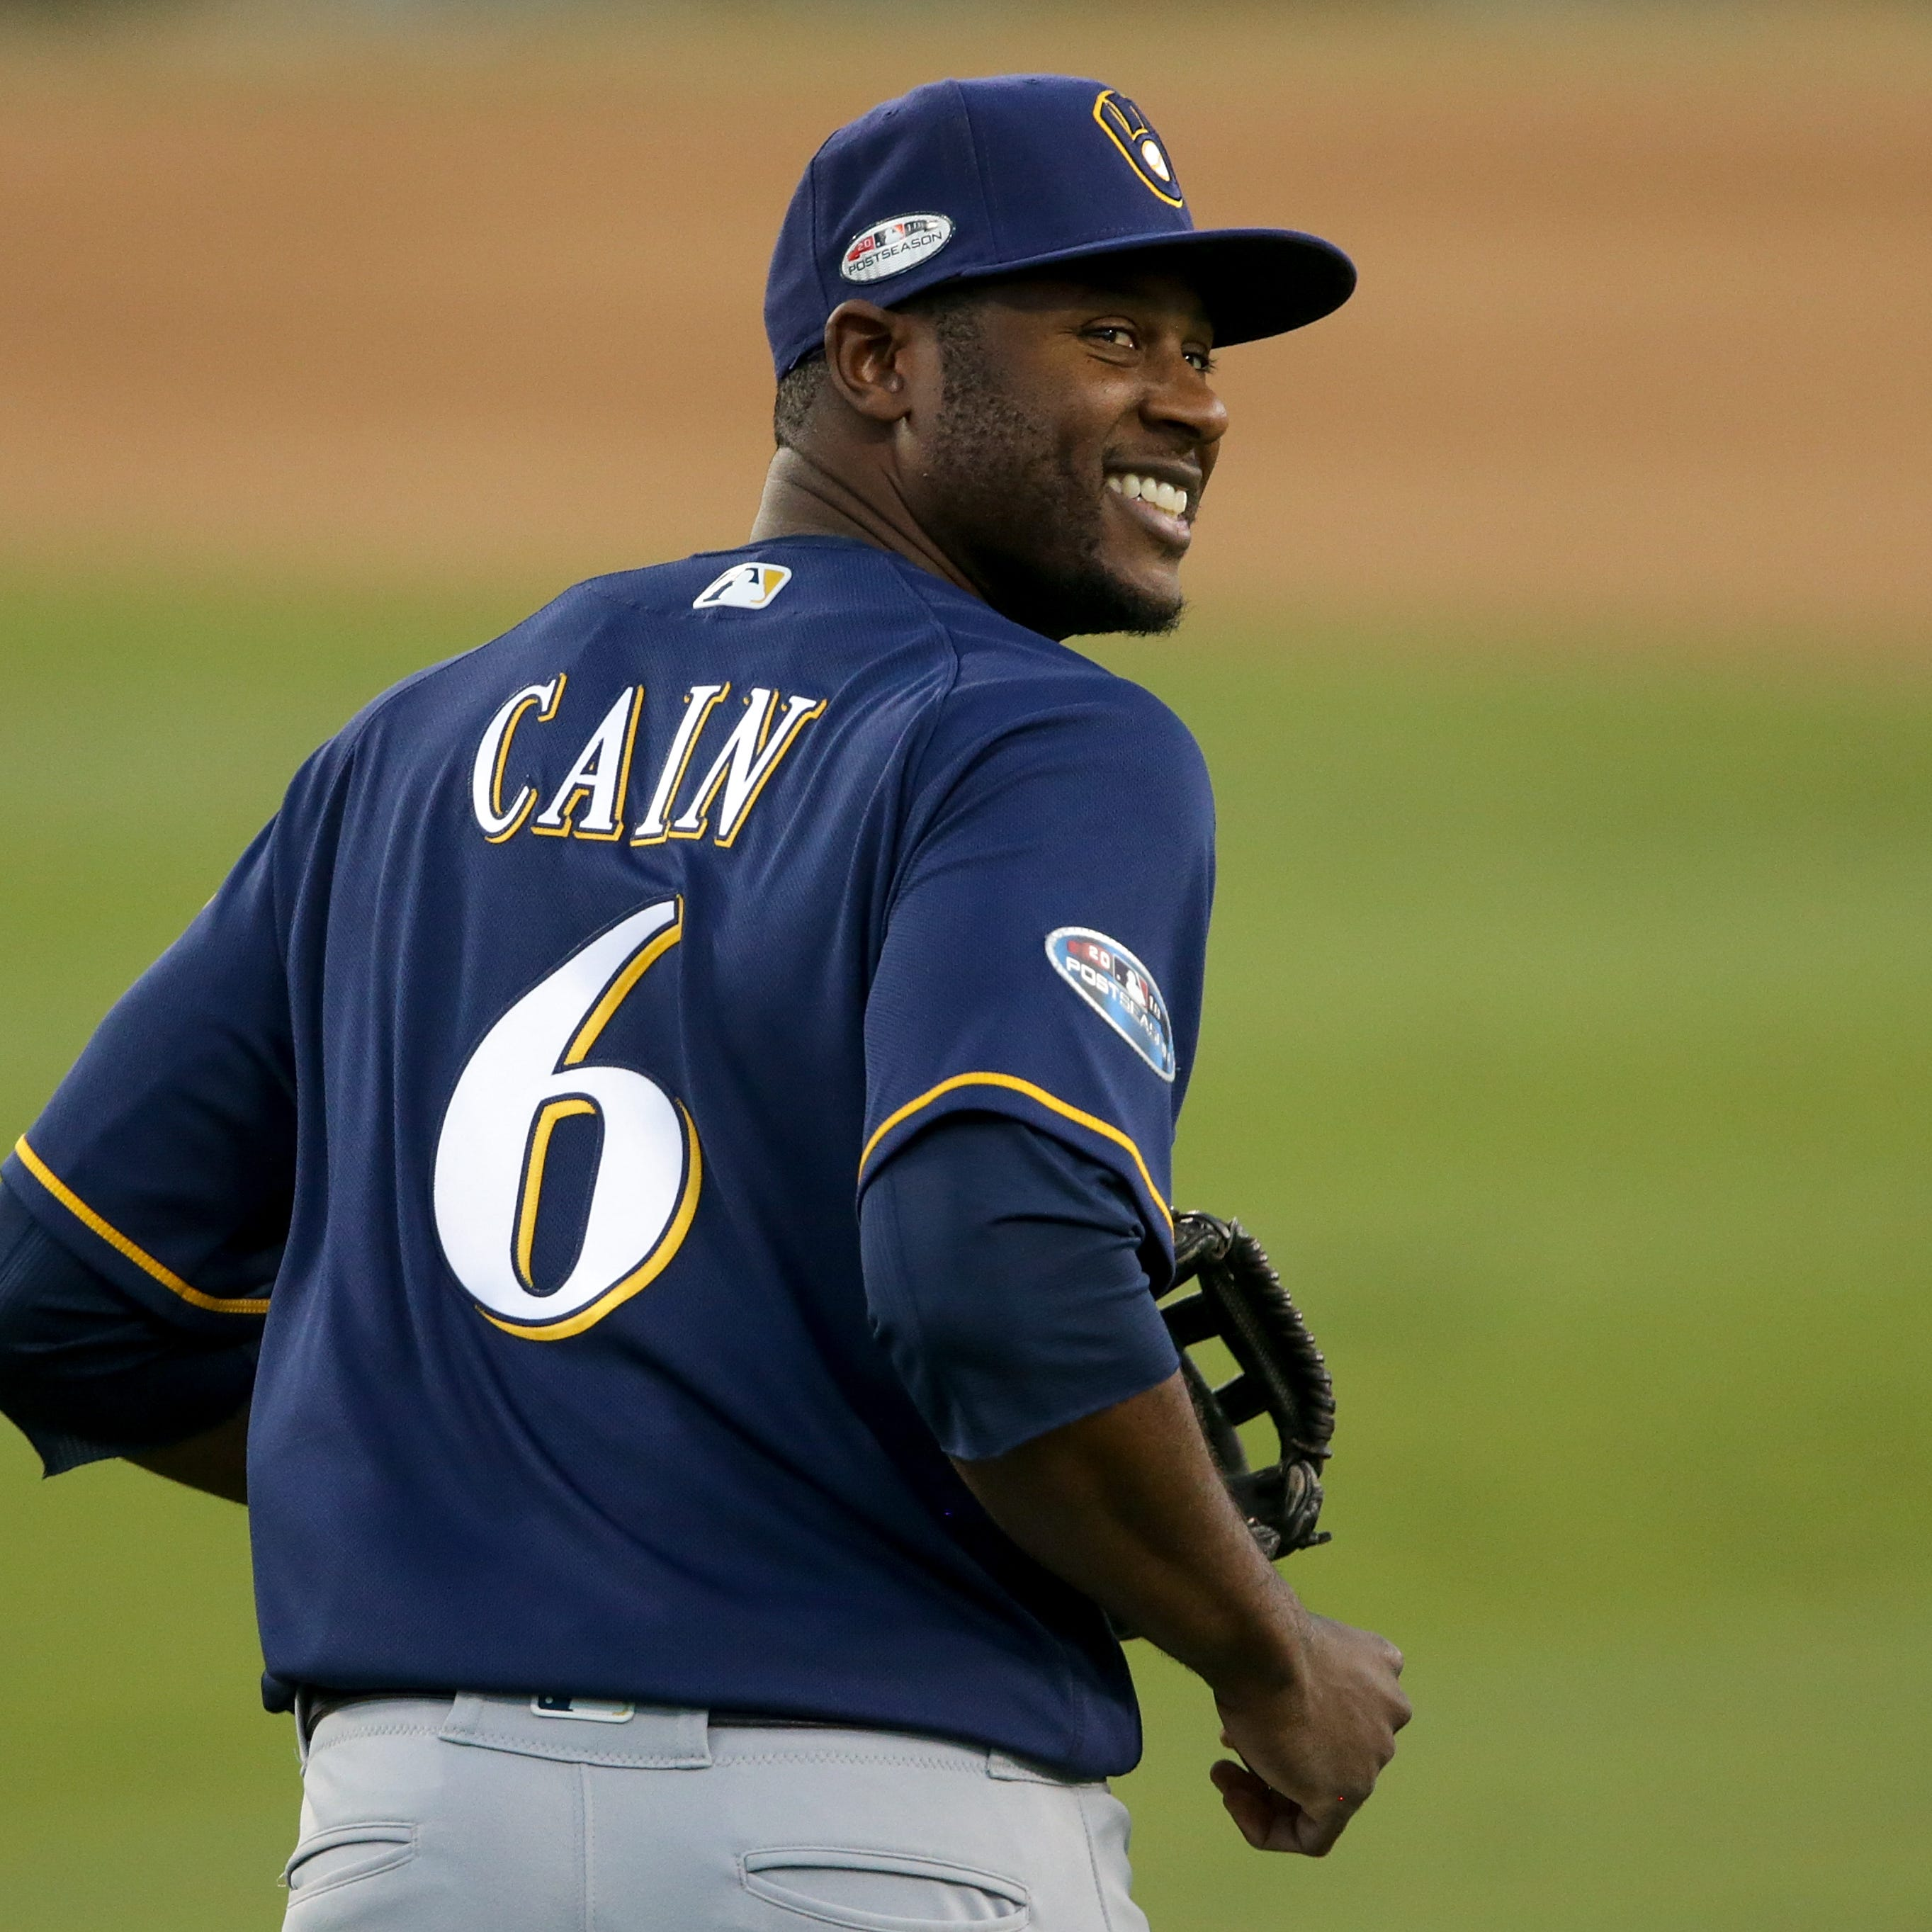 Center field: Lorenzo Cain seeking to do it all again for the Brewers in 2019